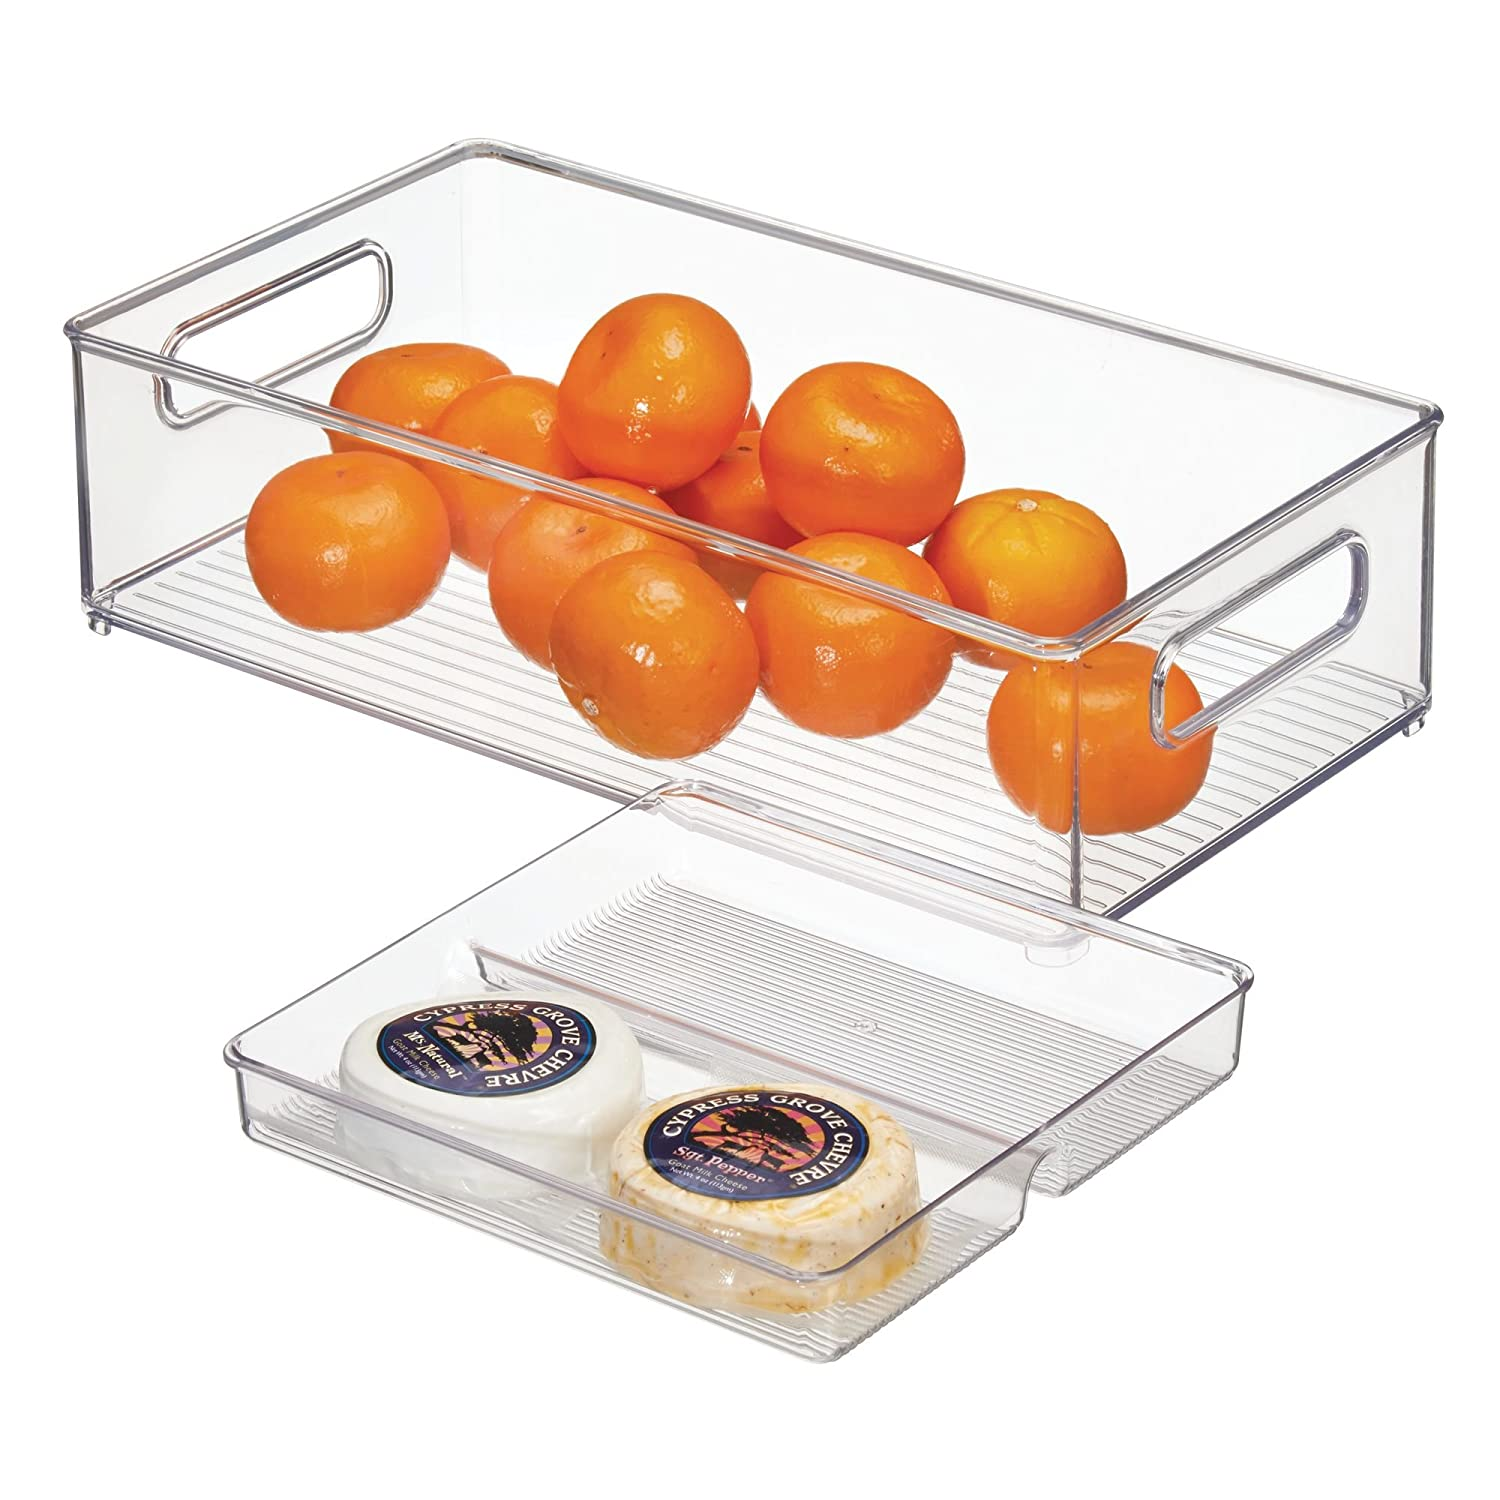 InterDesign Kitchen Storage Bin and Tray – Food Organizer Drawer for Pantry or Refrigerator – 2 Piece Set, Clear